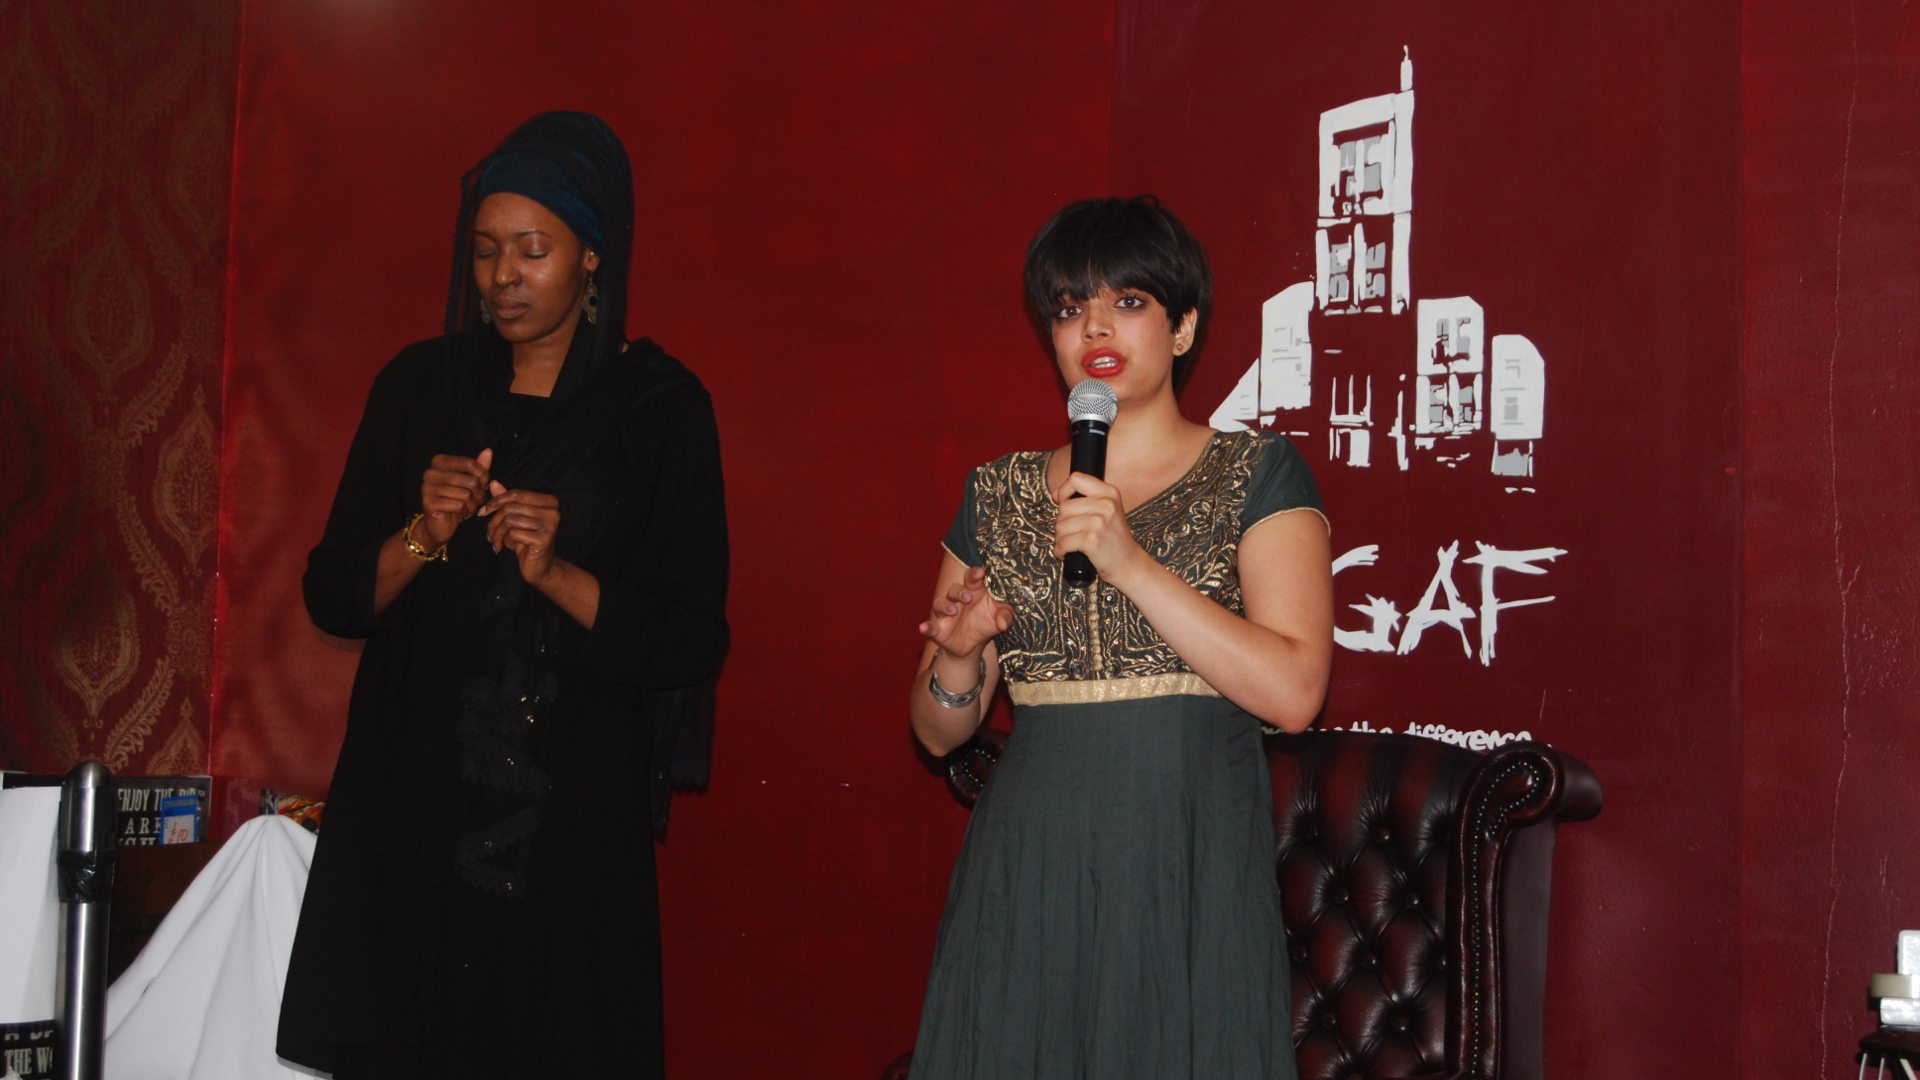 Golden Blue and Shareefa Energy, D'Gaf, Jul 21, 2015, by Aaron Lee (1920x1080)